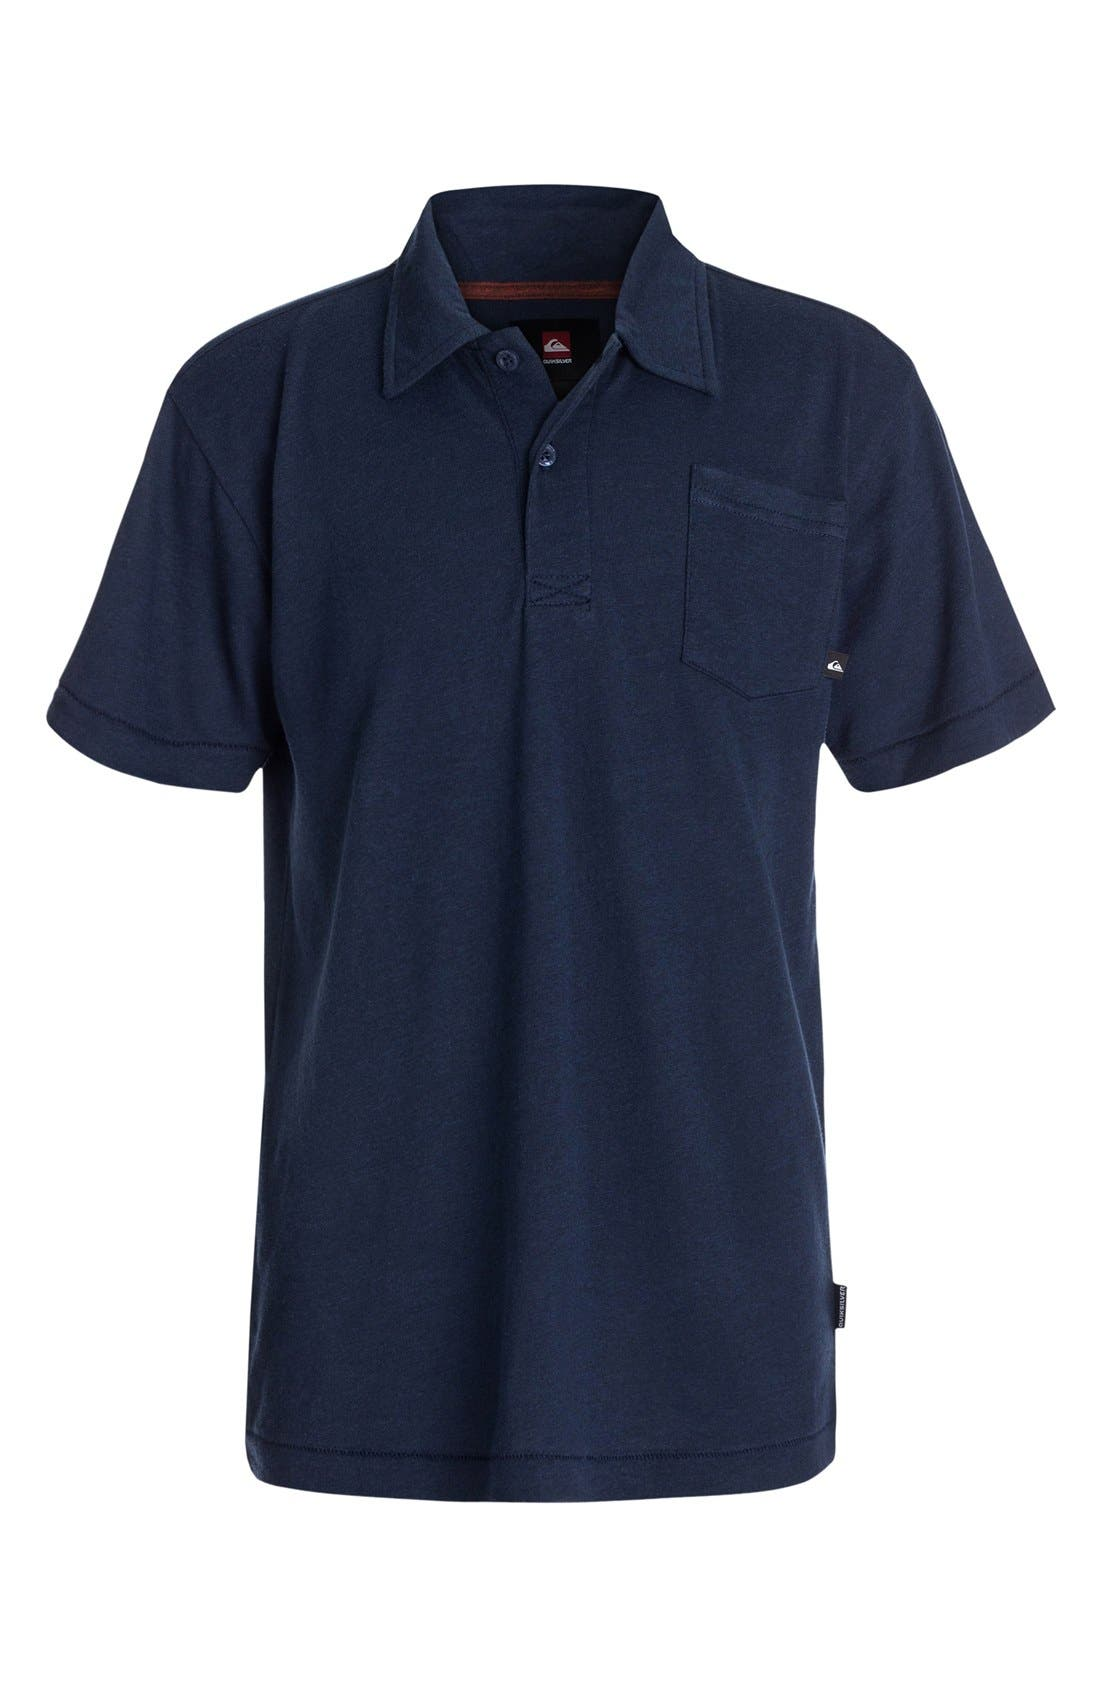 Alternate Image 1 Selected - Quiksilver 'Core' Cotton Blend Jersey Polo (Baby Boys) (Online Only)